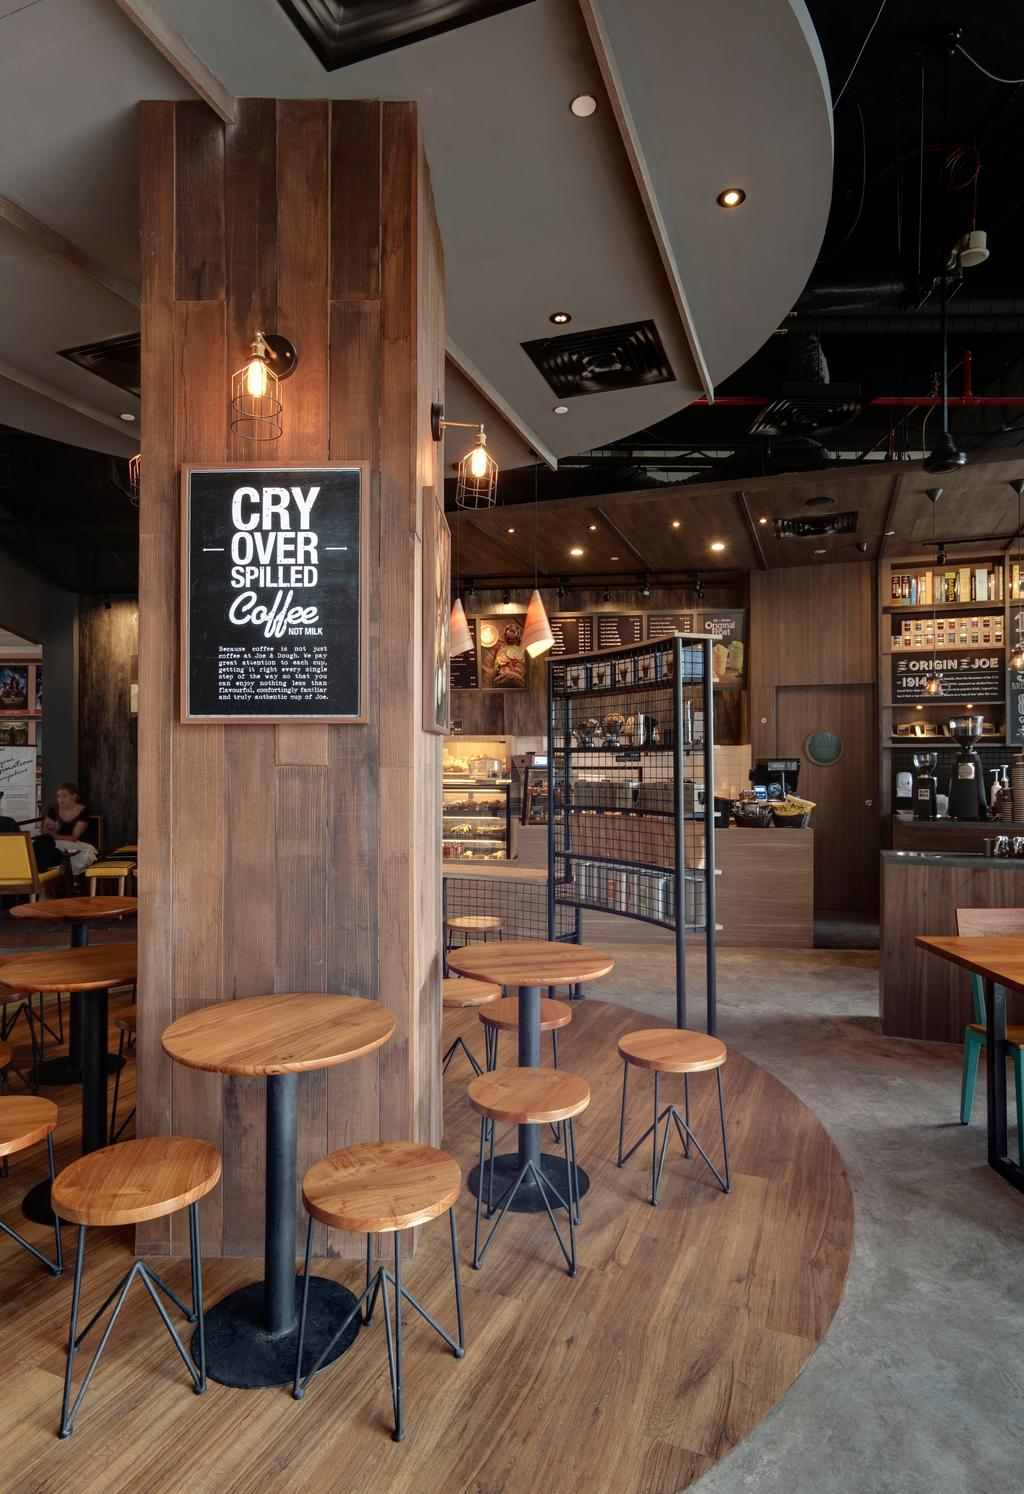 Joe & Dough (Kallang Leisure Park), Commercial, Interior Designer, Liid Studio, Scandinavian, Shop Interior, Coffee Table, Round Table, Stool, Wood, Laminate, Wall Lamp, Cafe, Restaurant, Chair, Furniture, Dining Table, Table, Lighting, Couch, Bench, Bar Counter, Pub